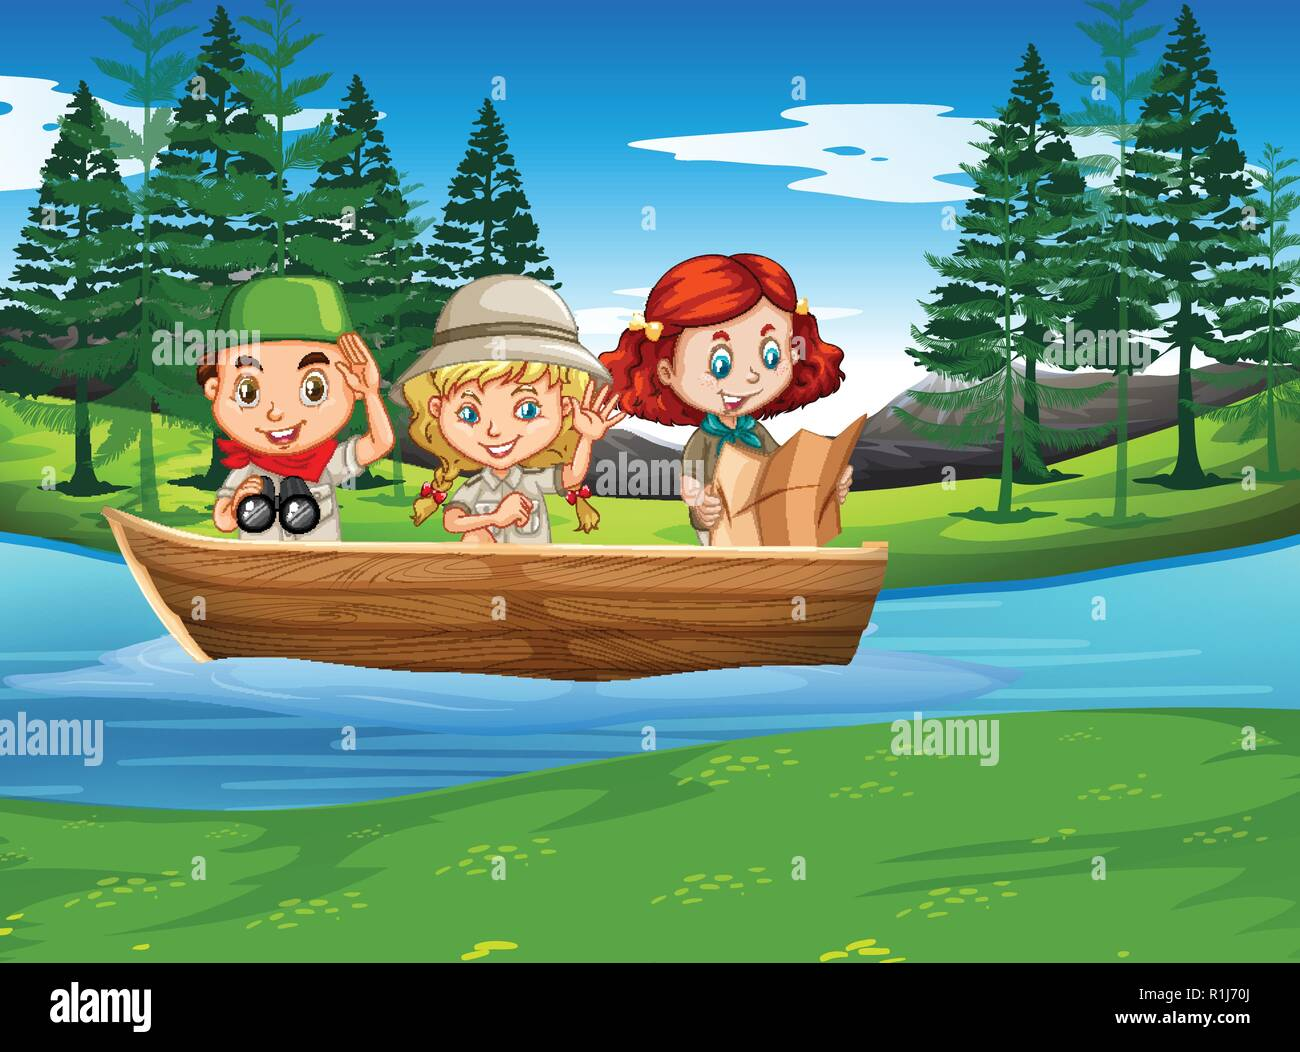 Camping boy and girl exploring nature illustration - Stock Vector